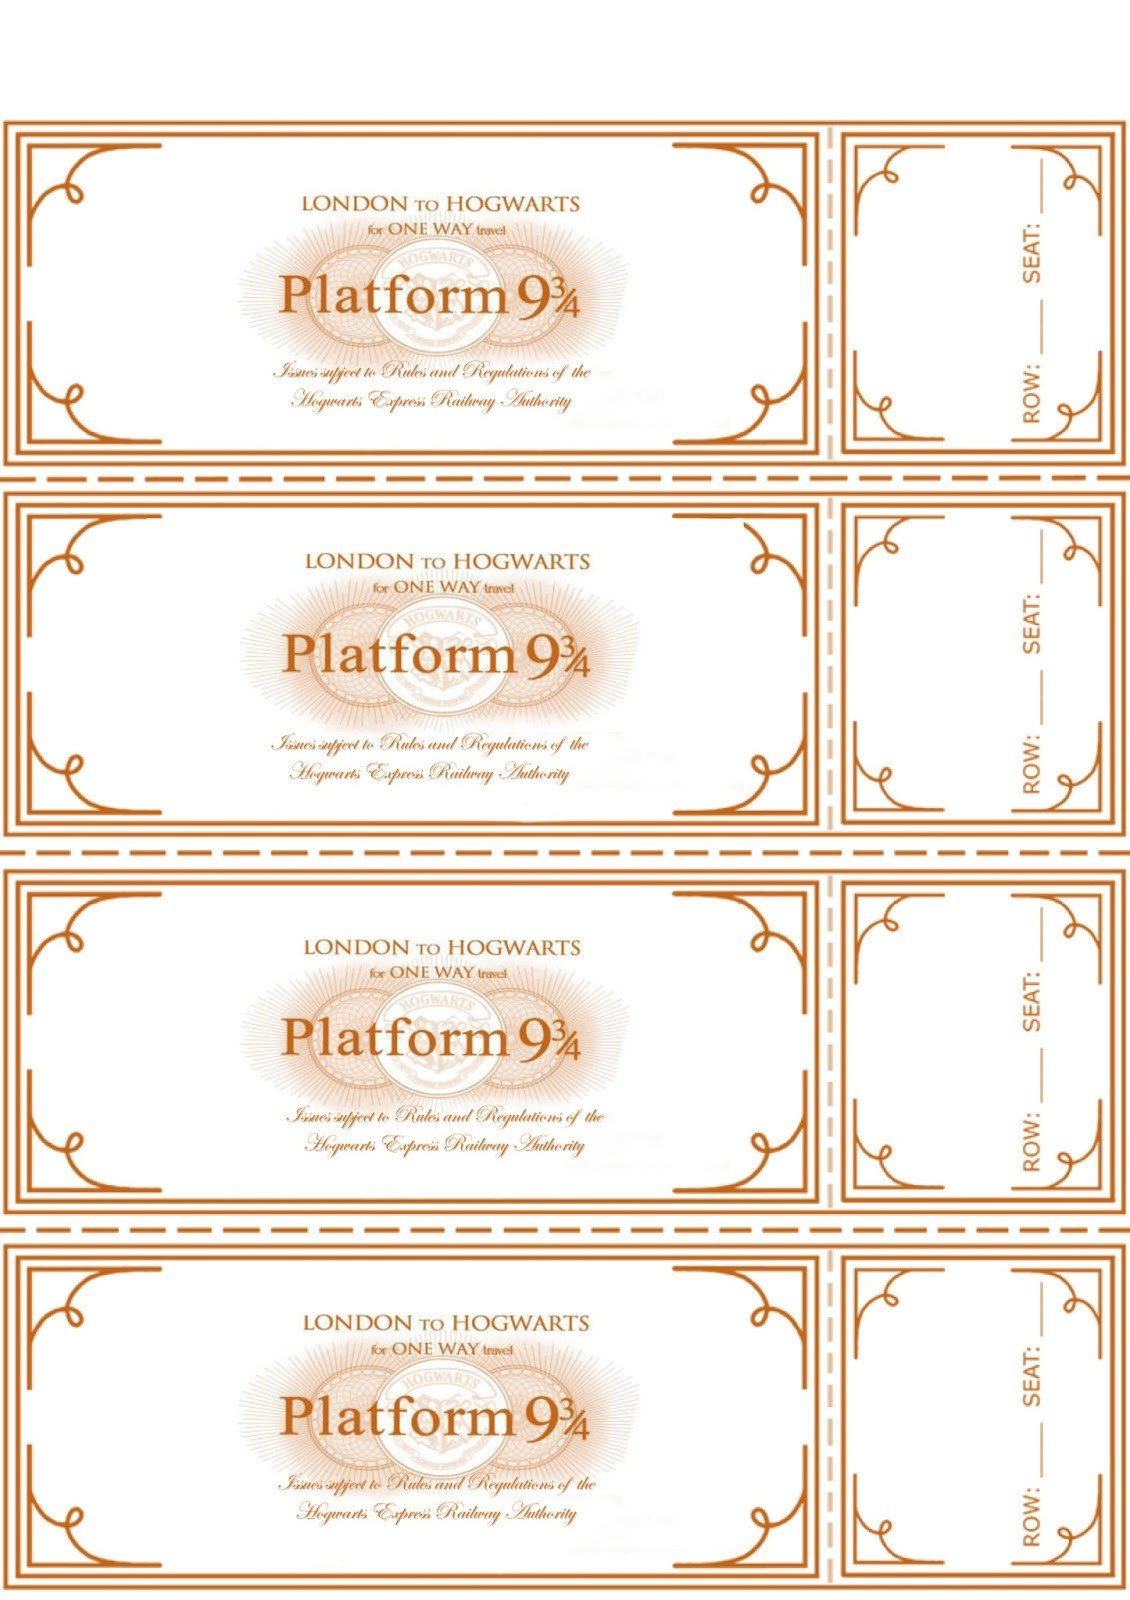 Hogwarts Express Ticket Template I Do A Dime Harry Potter Party